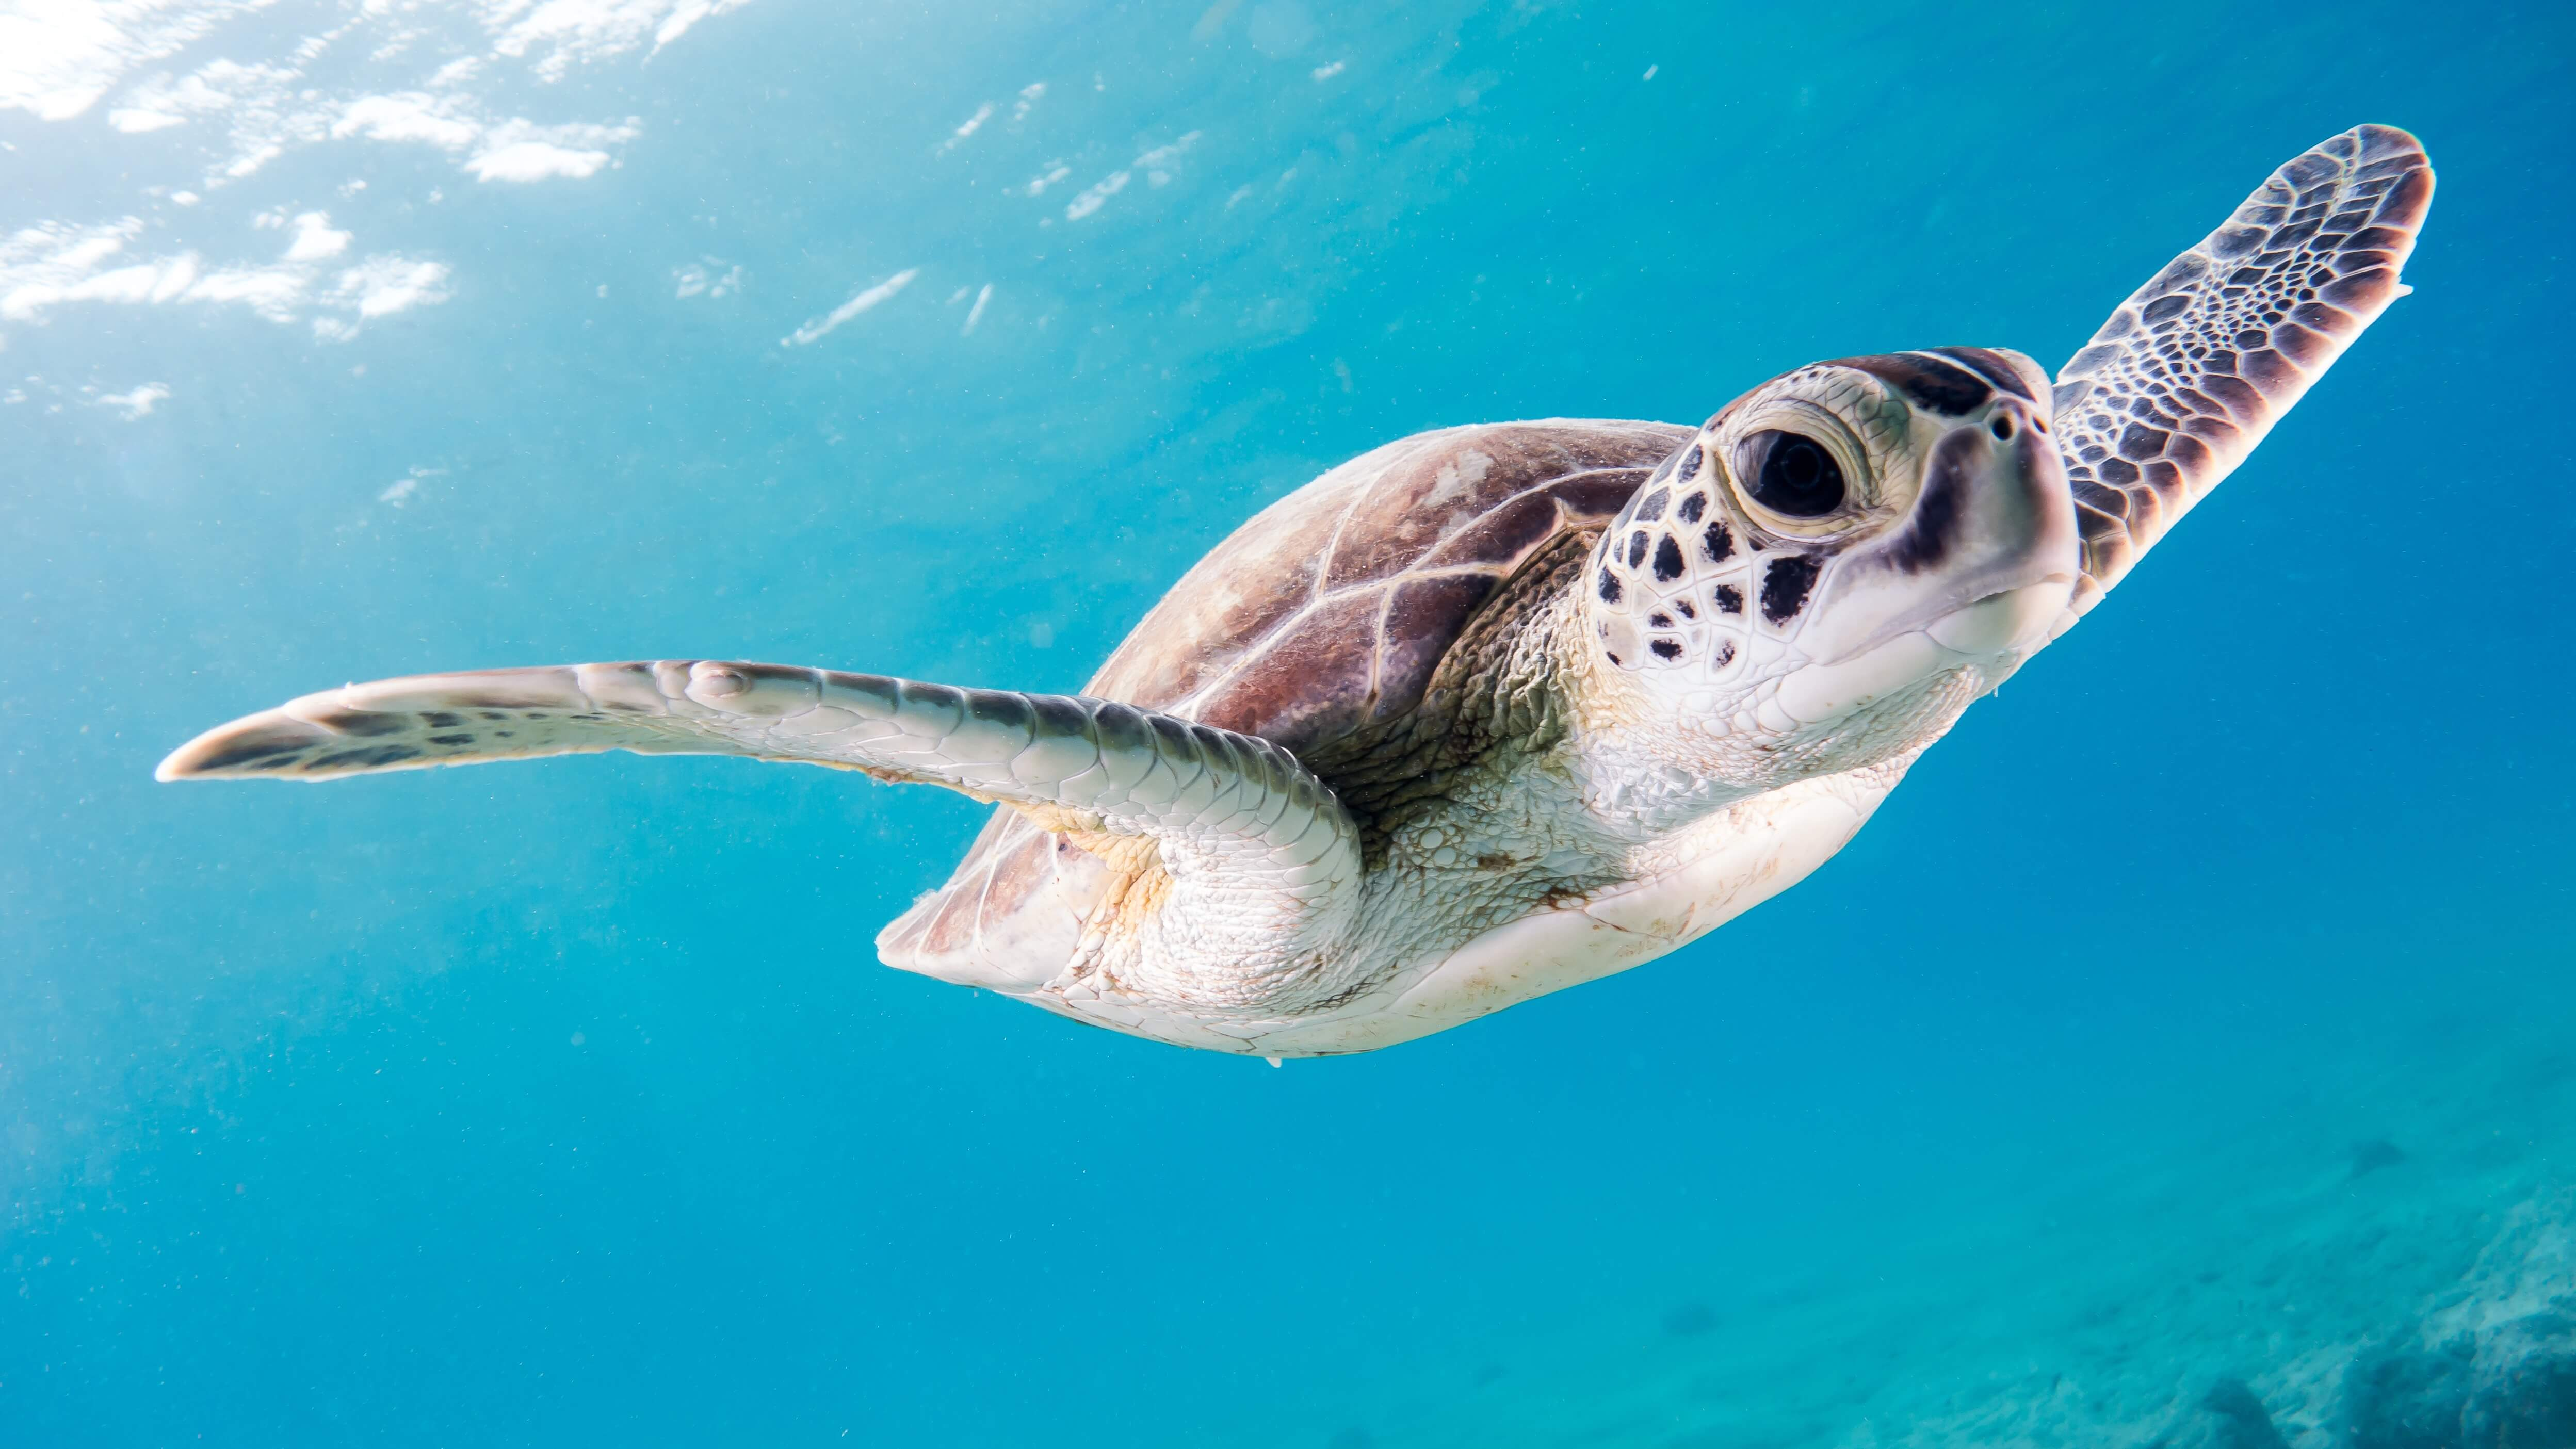 Save the endangered turtles in Maldives.